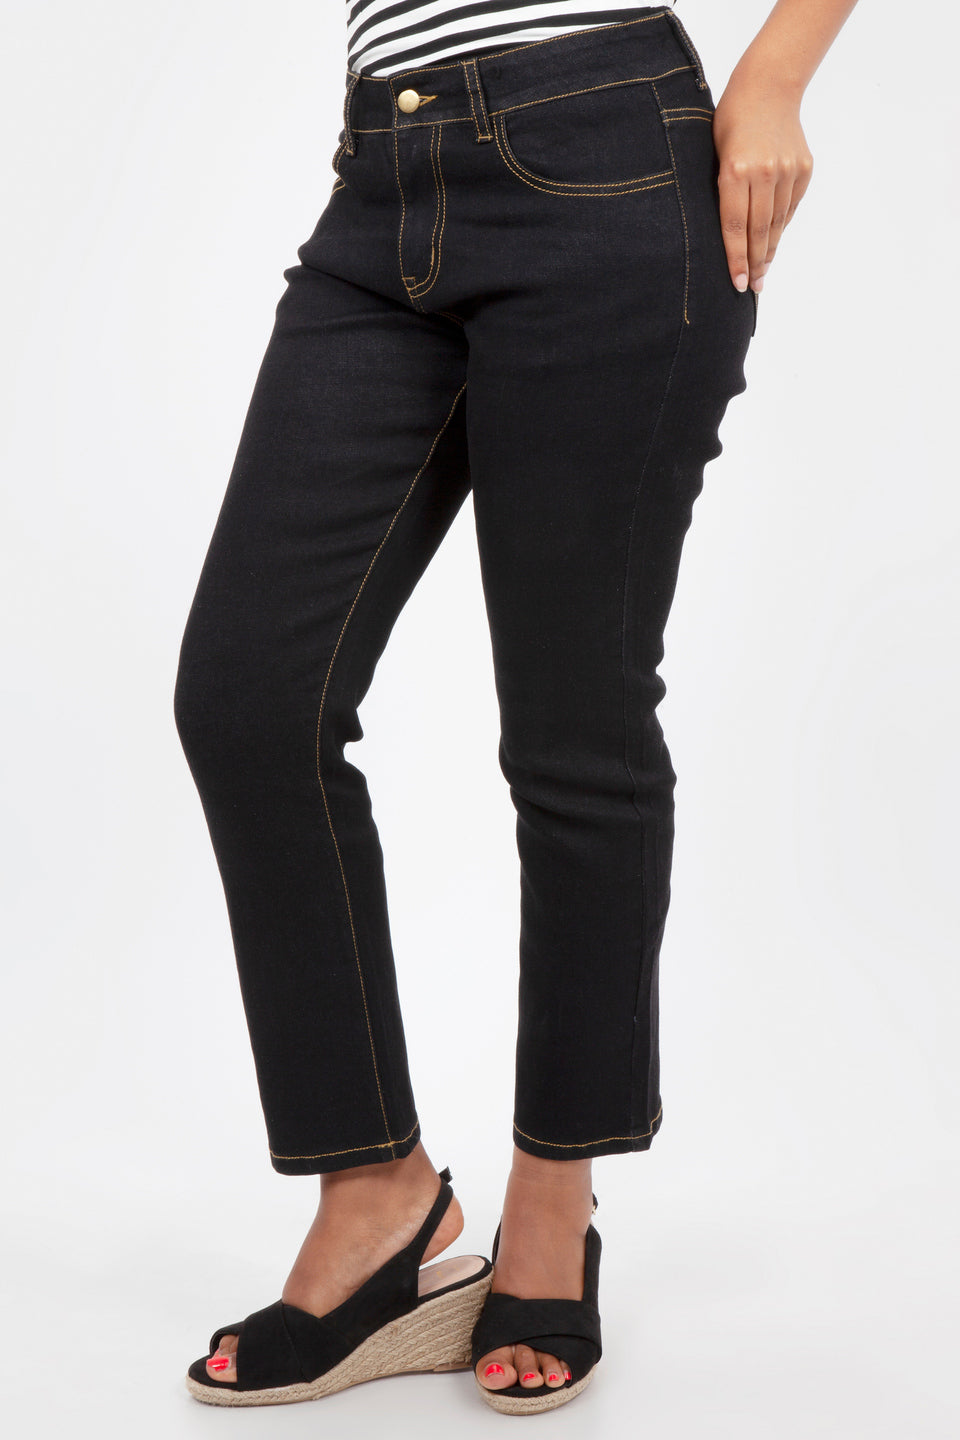 Heart Pocket Cigarette Pants